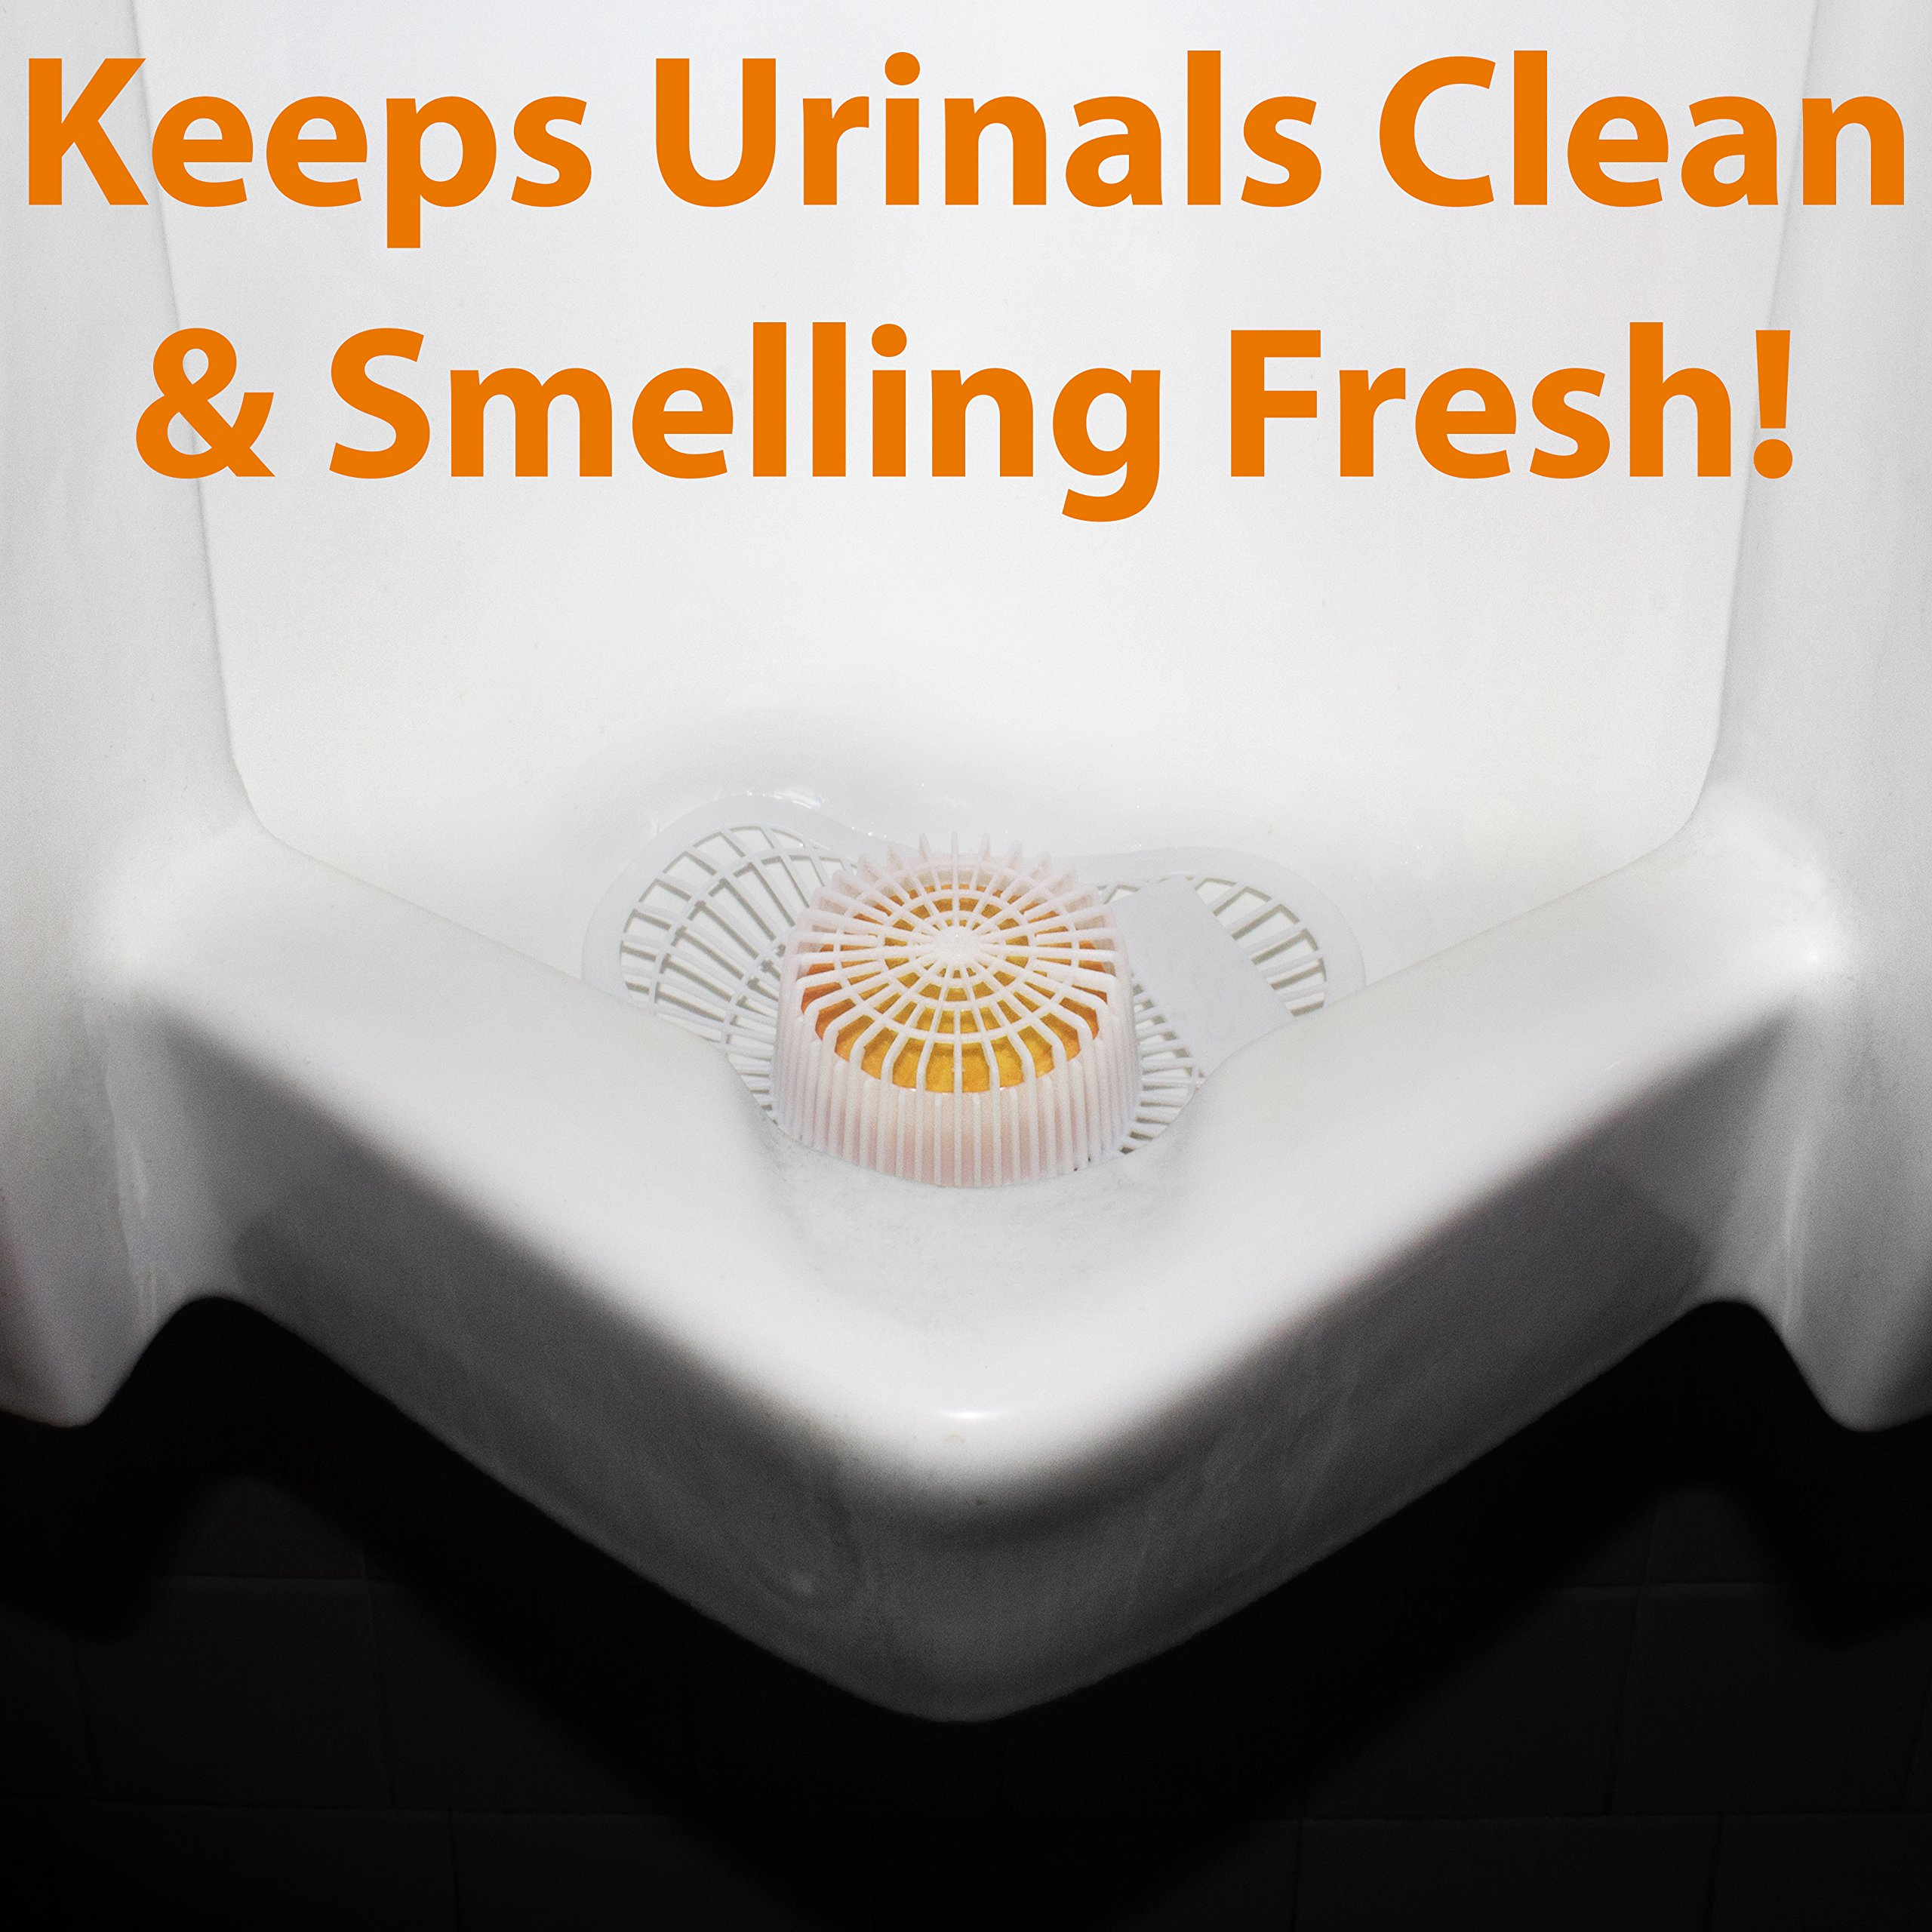 Long Lasting Urinal Screen and Deodorizer with Non-Para Block 12 Pack. Universal-Fit, Citrus-Scent Cake Releases Cleaning Agents To Remove Odor. Durable Mat Limits Janitorial Cleaning and Supply Needs by Mop Mob (Image #2)